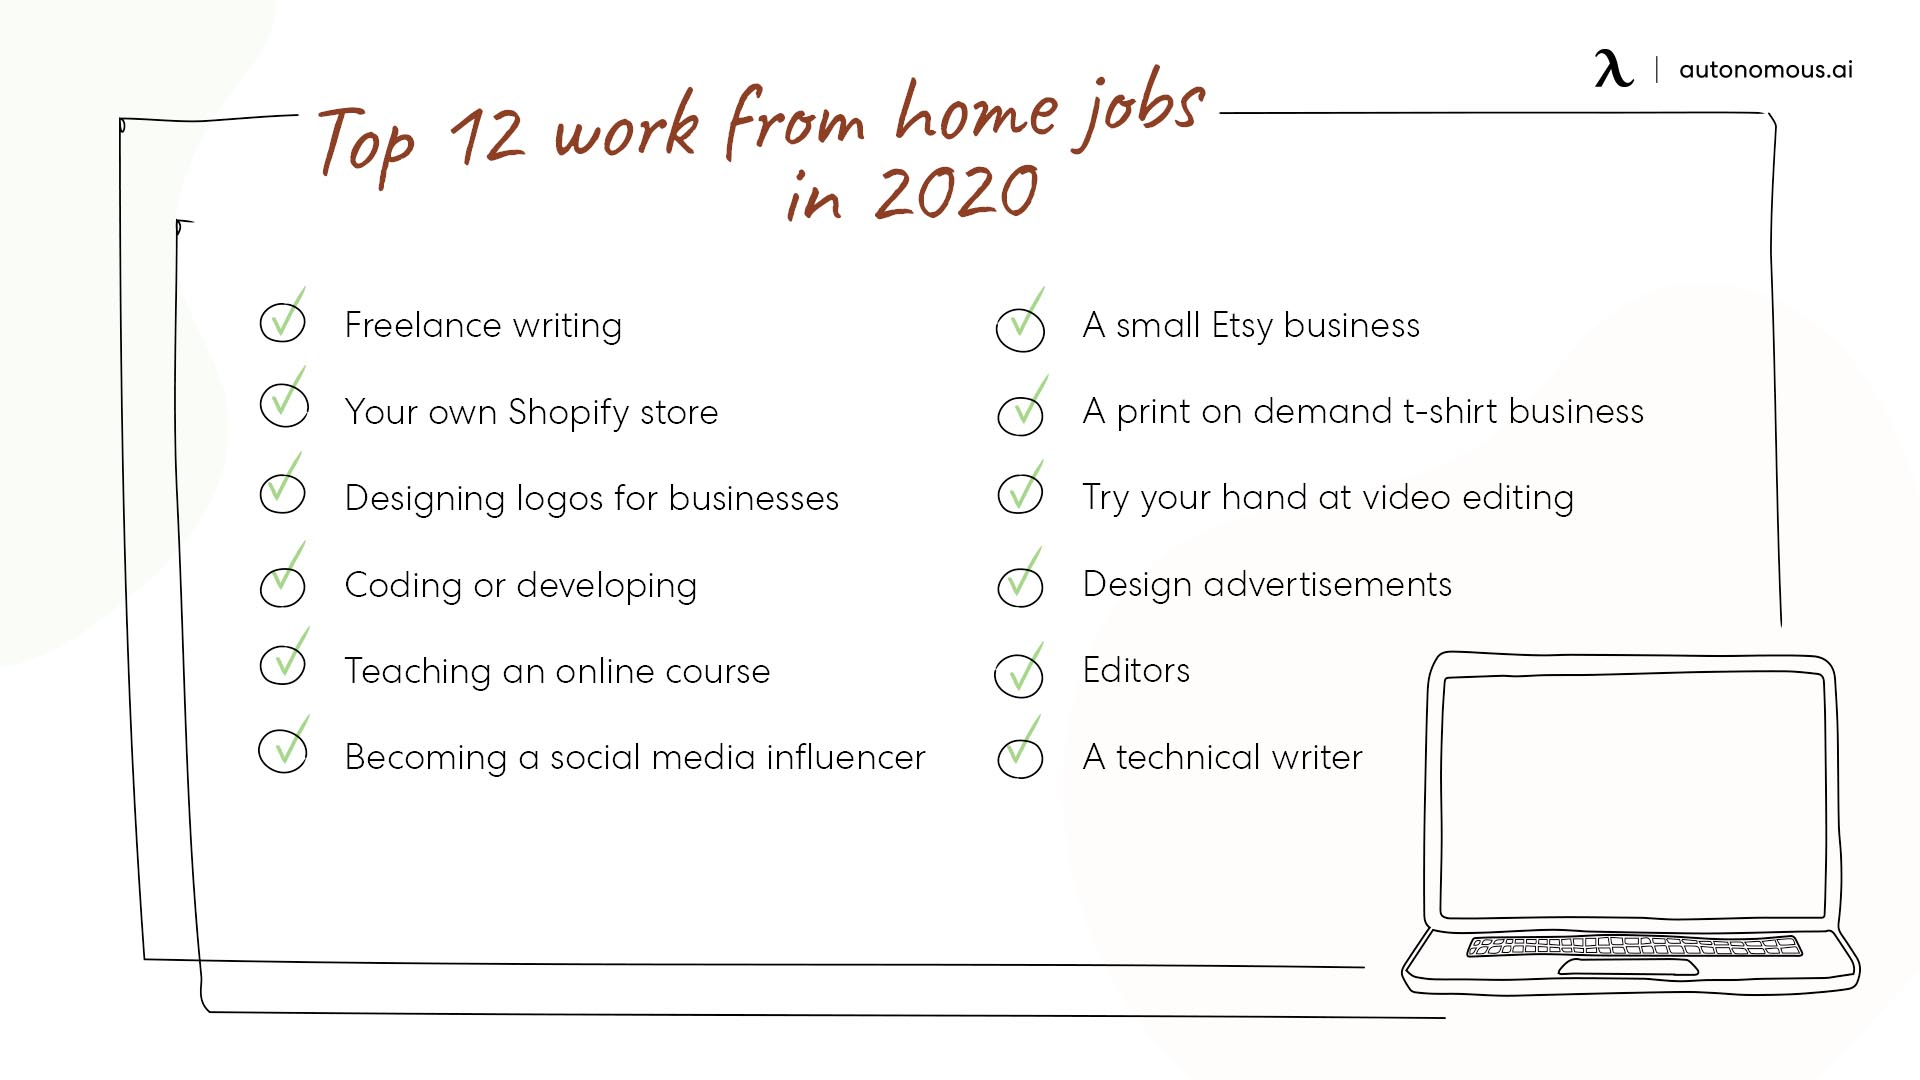 Work from home jobs in 2020